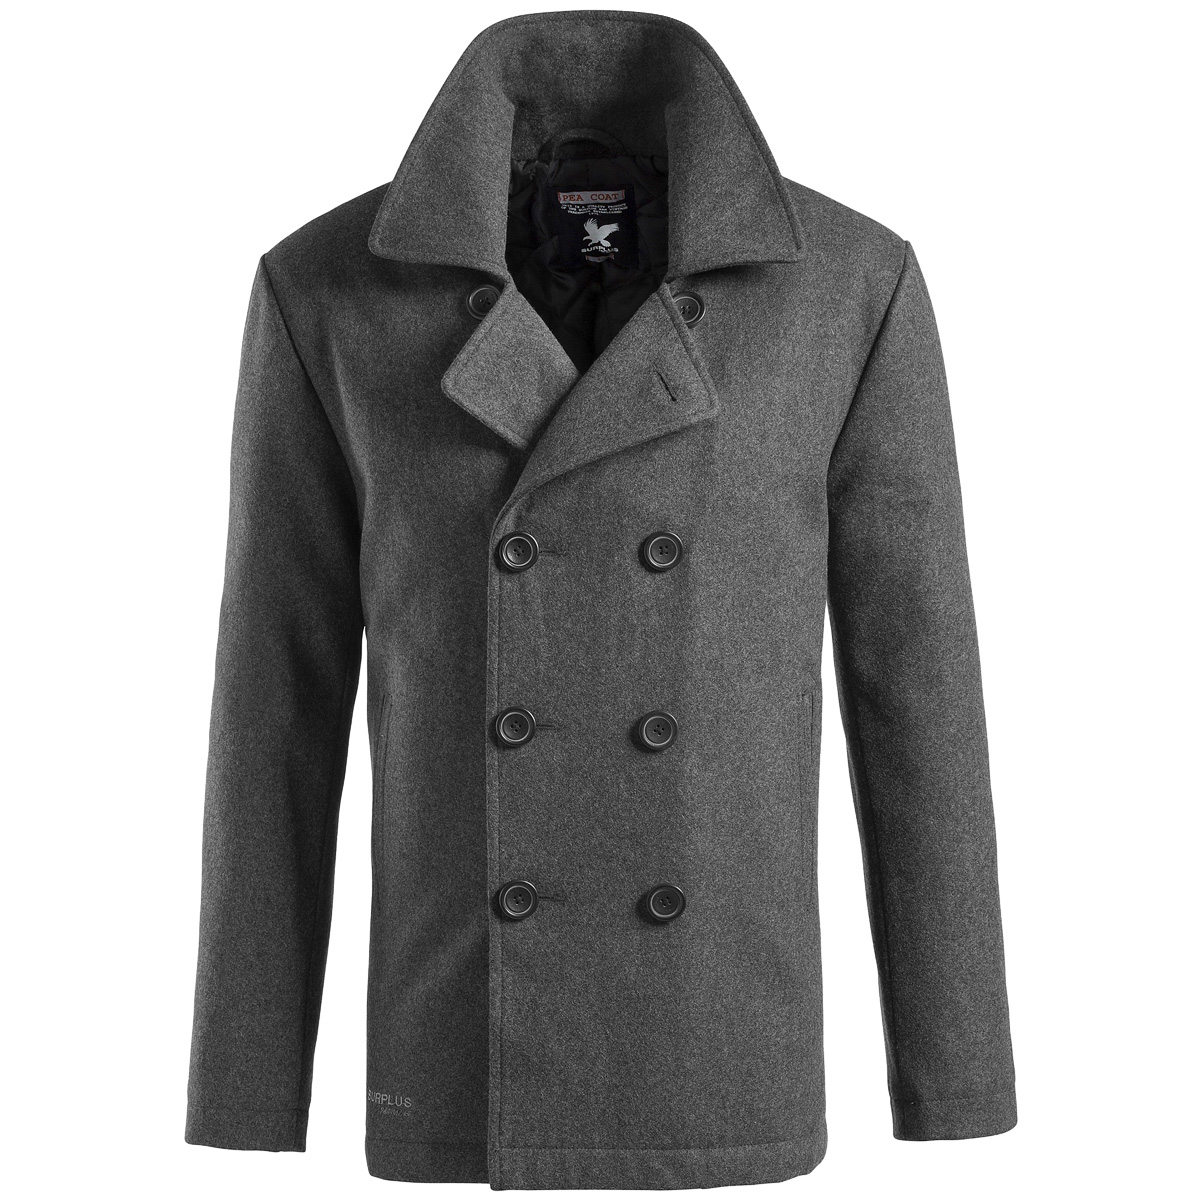 SURPLUS CLASSIC NAVY PEA COAT WARM MENS WINTER WOOL REEFER JACKET ANTHRACITE